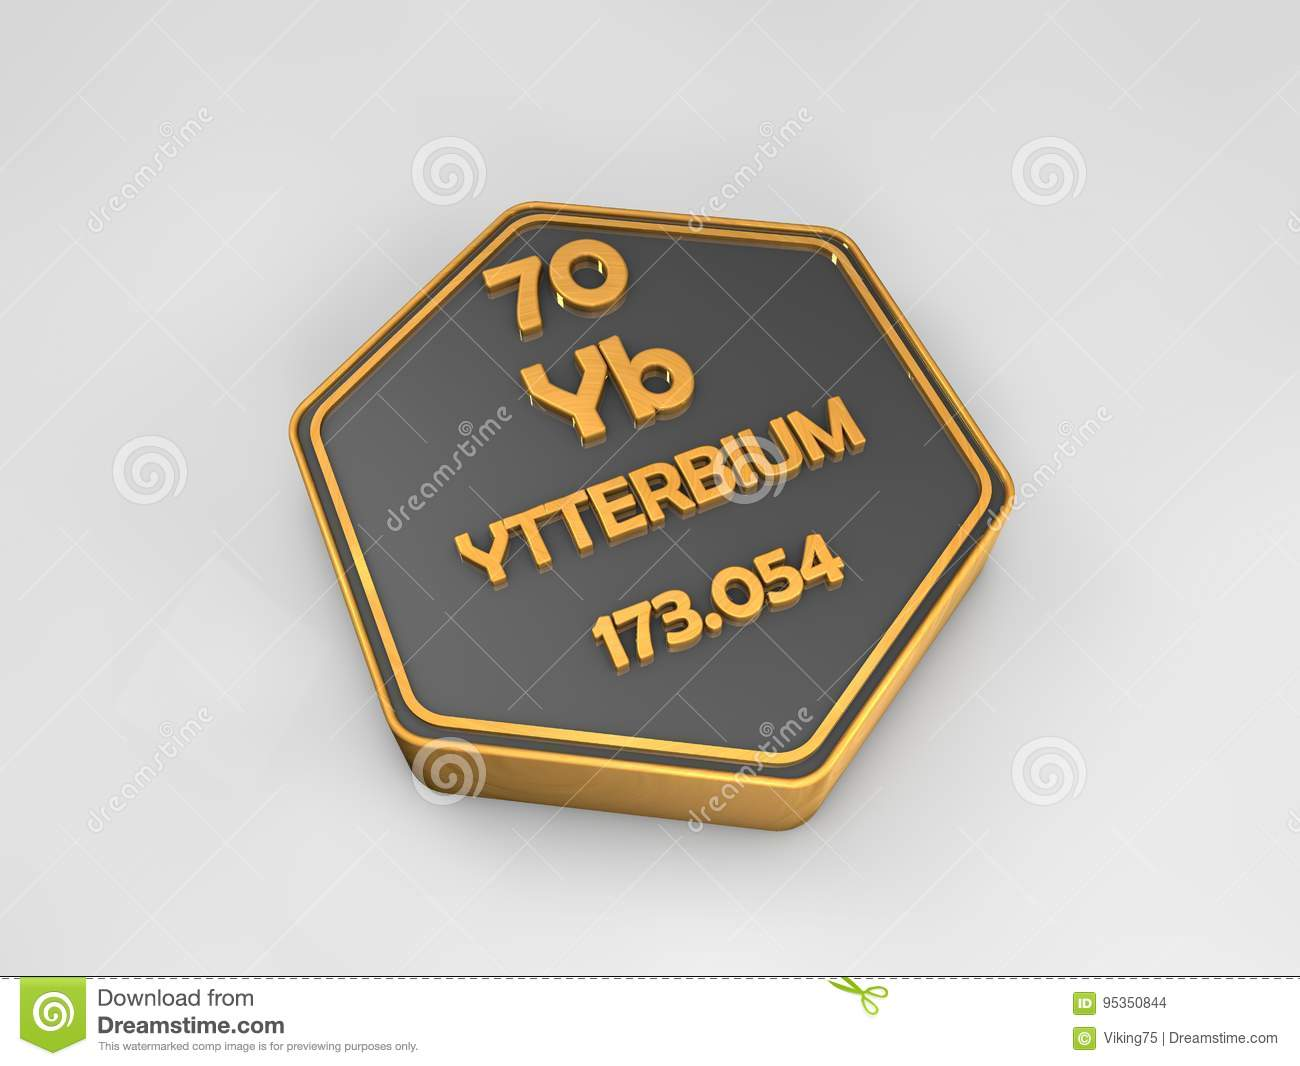 Ytterbium yb chemical element periodic table hexagonal shape ytterbium yb chemical element periodic table hexagonal shape urtaz Gallery